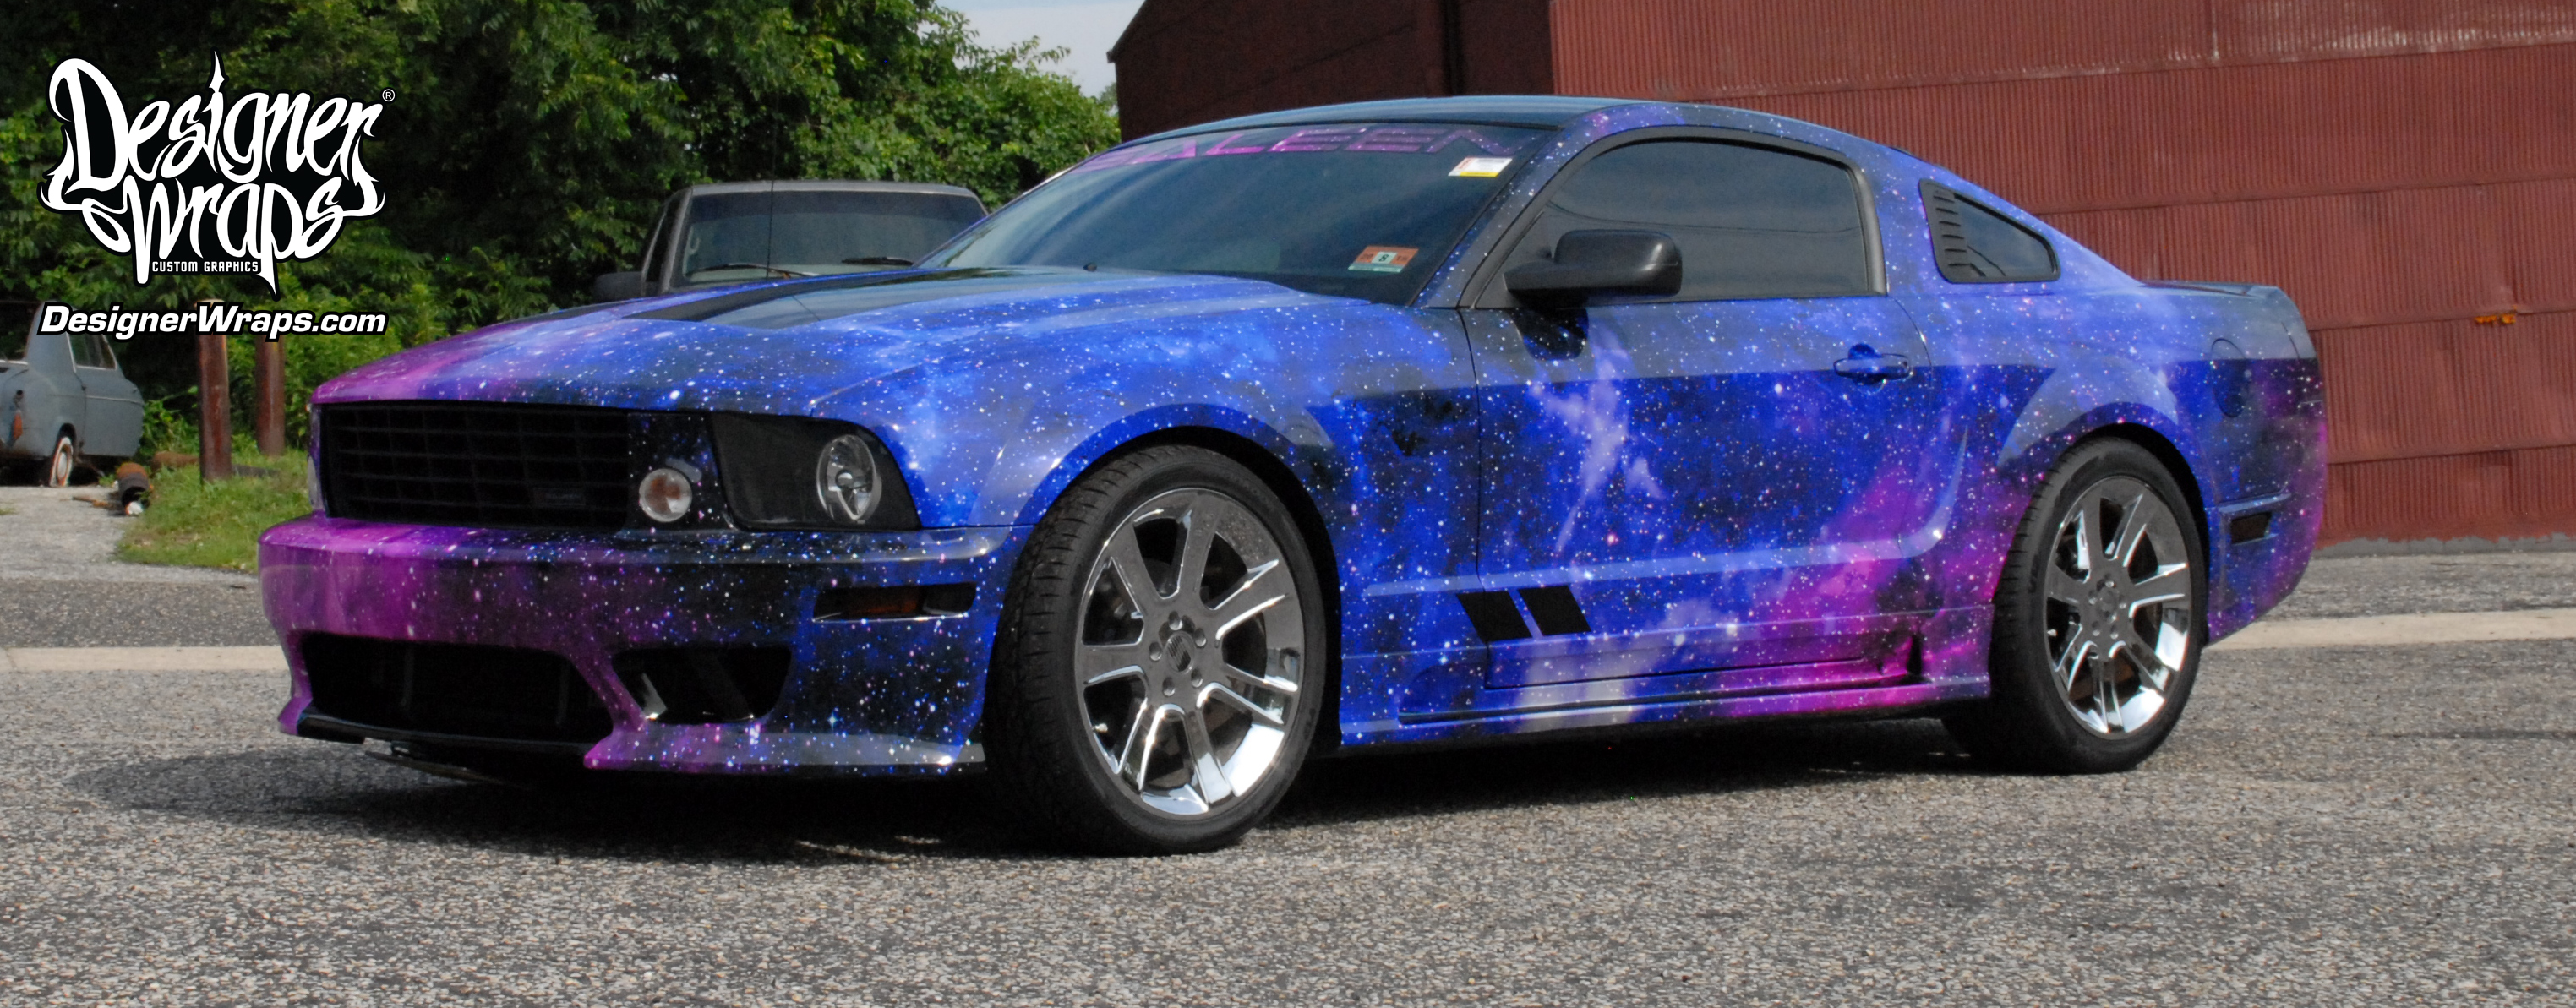 2016 Saleen Mustang >> Designer Wraps – Custom Vehicle Wraps, Fleet Wraps, Color Changes – Philadelphia Wraps, South ...